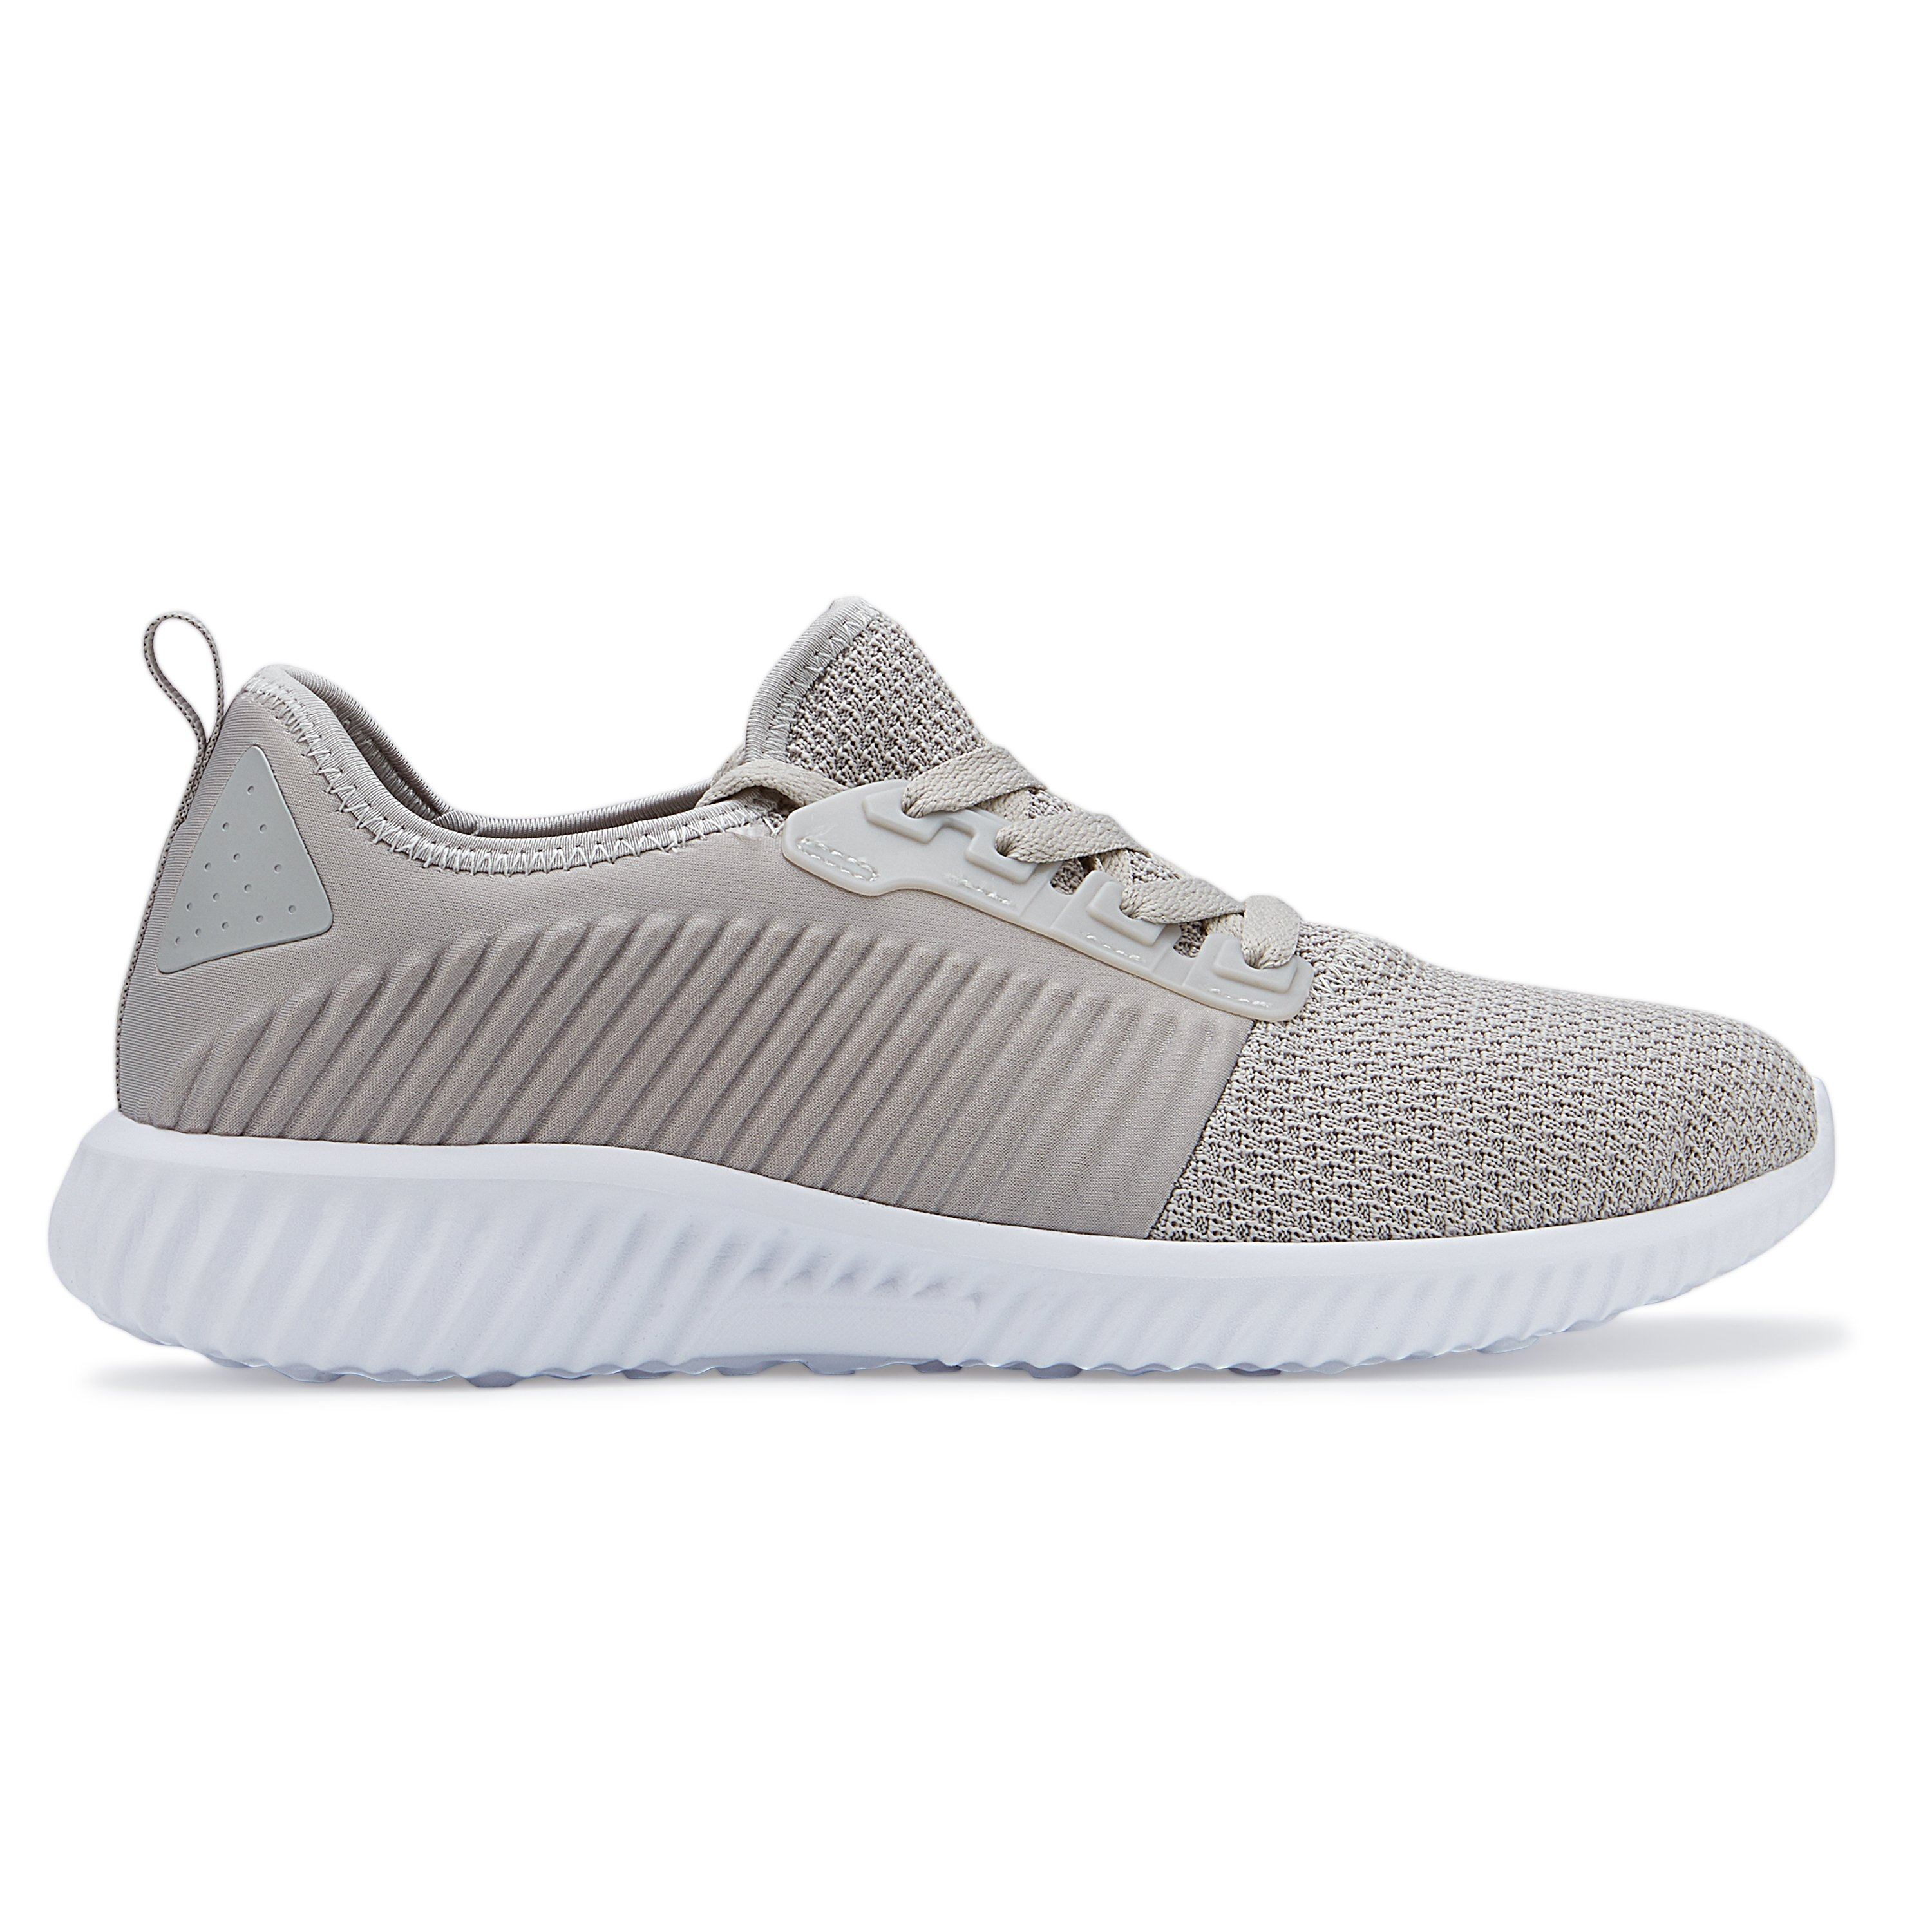 Xray Galeras Men's Sneakers sale very cheap extremely for sale discounts for sale 4RkVr